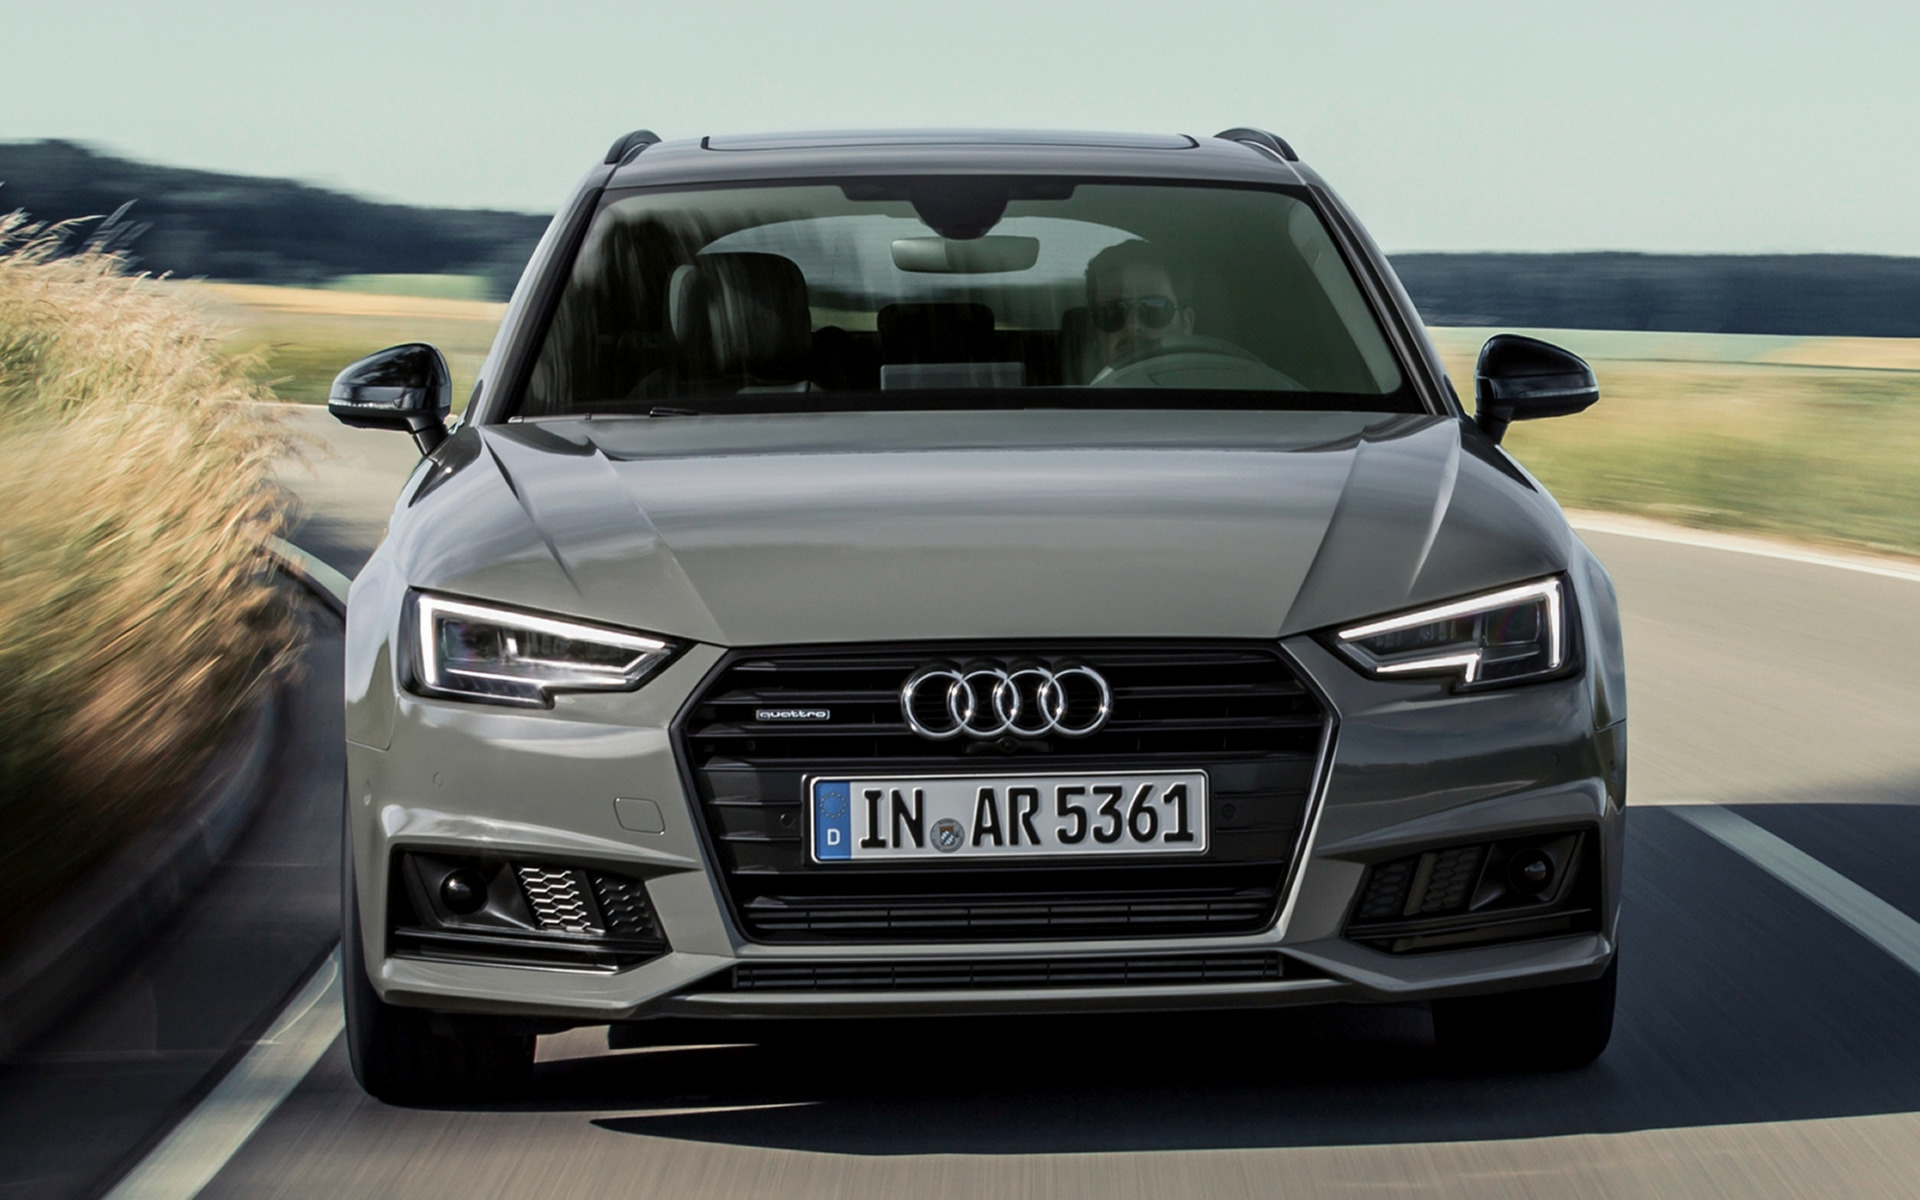 Wallpaper S4 Hd 2017 Audi A4 Avant Black Edition Wallpapers And Hd